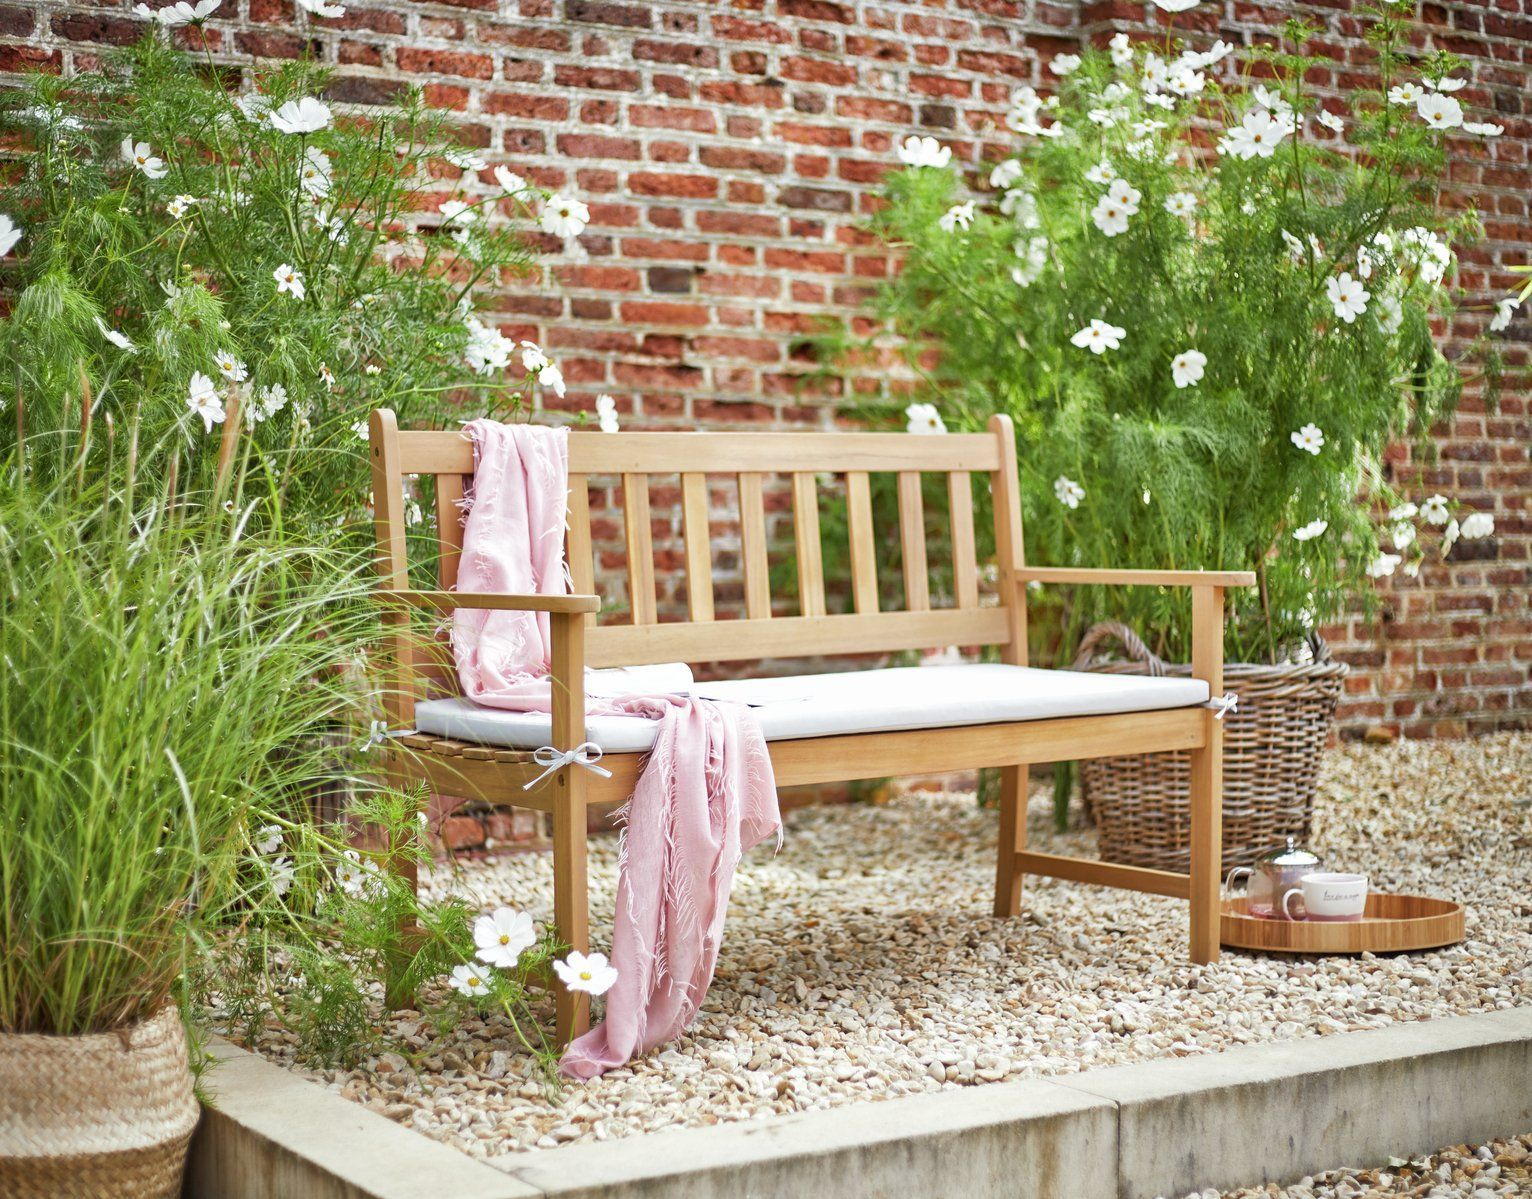 A Comprehensive Overview On Home Decoration In 2020 Garden Bench Dining Room Decor Argos Home